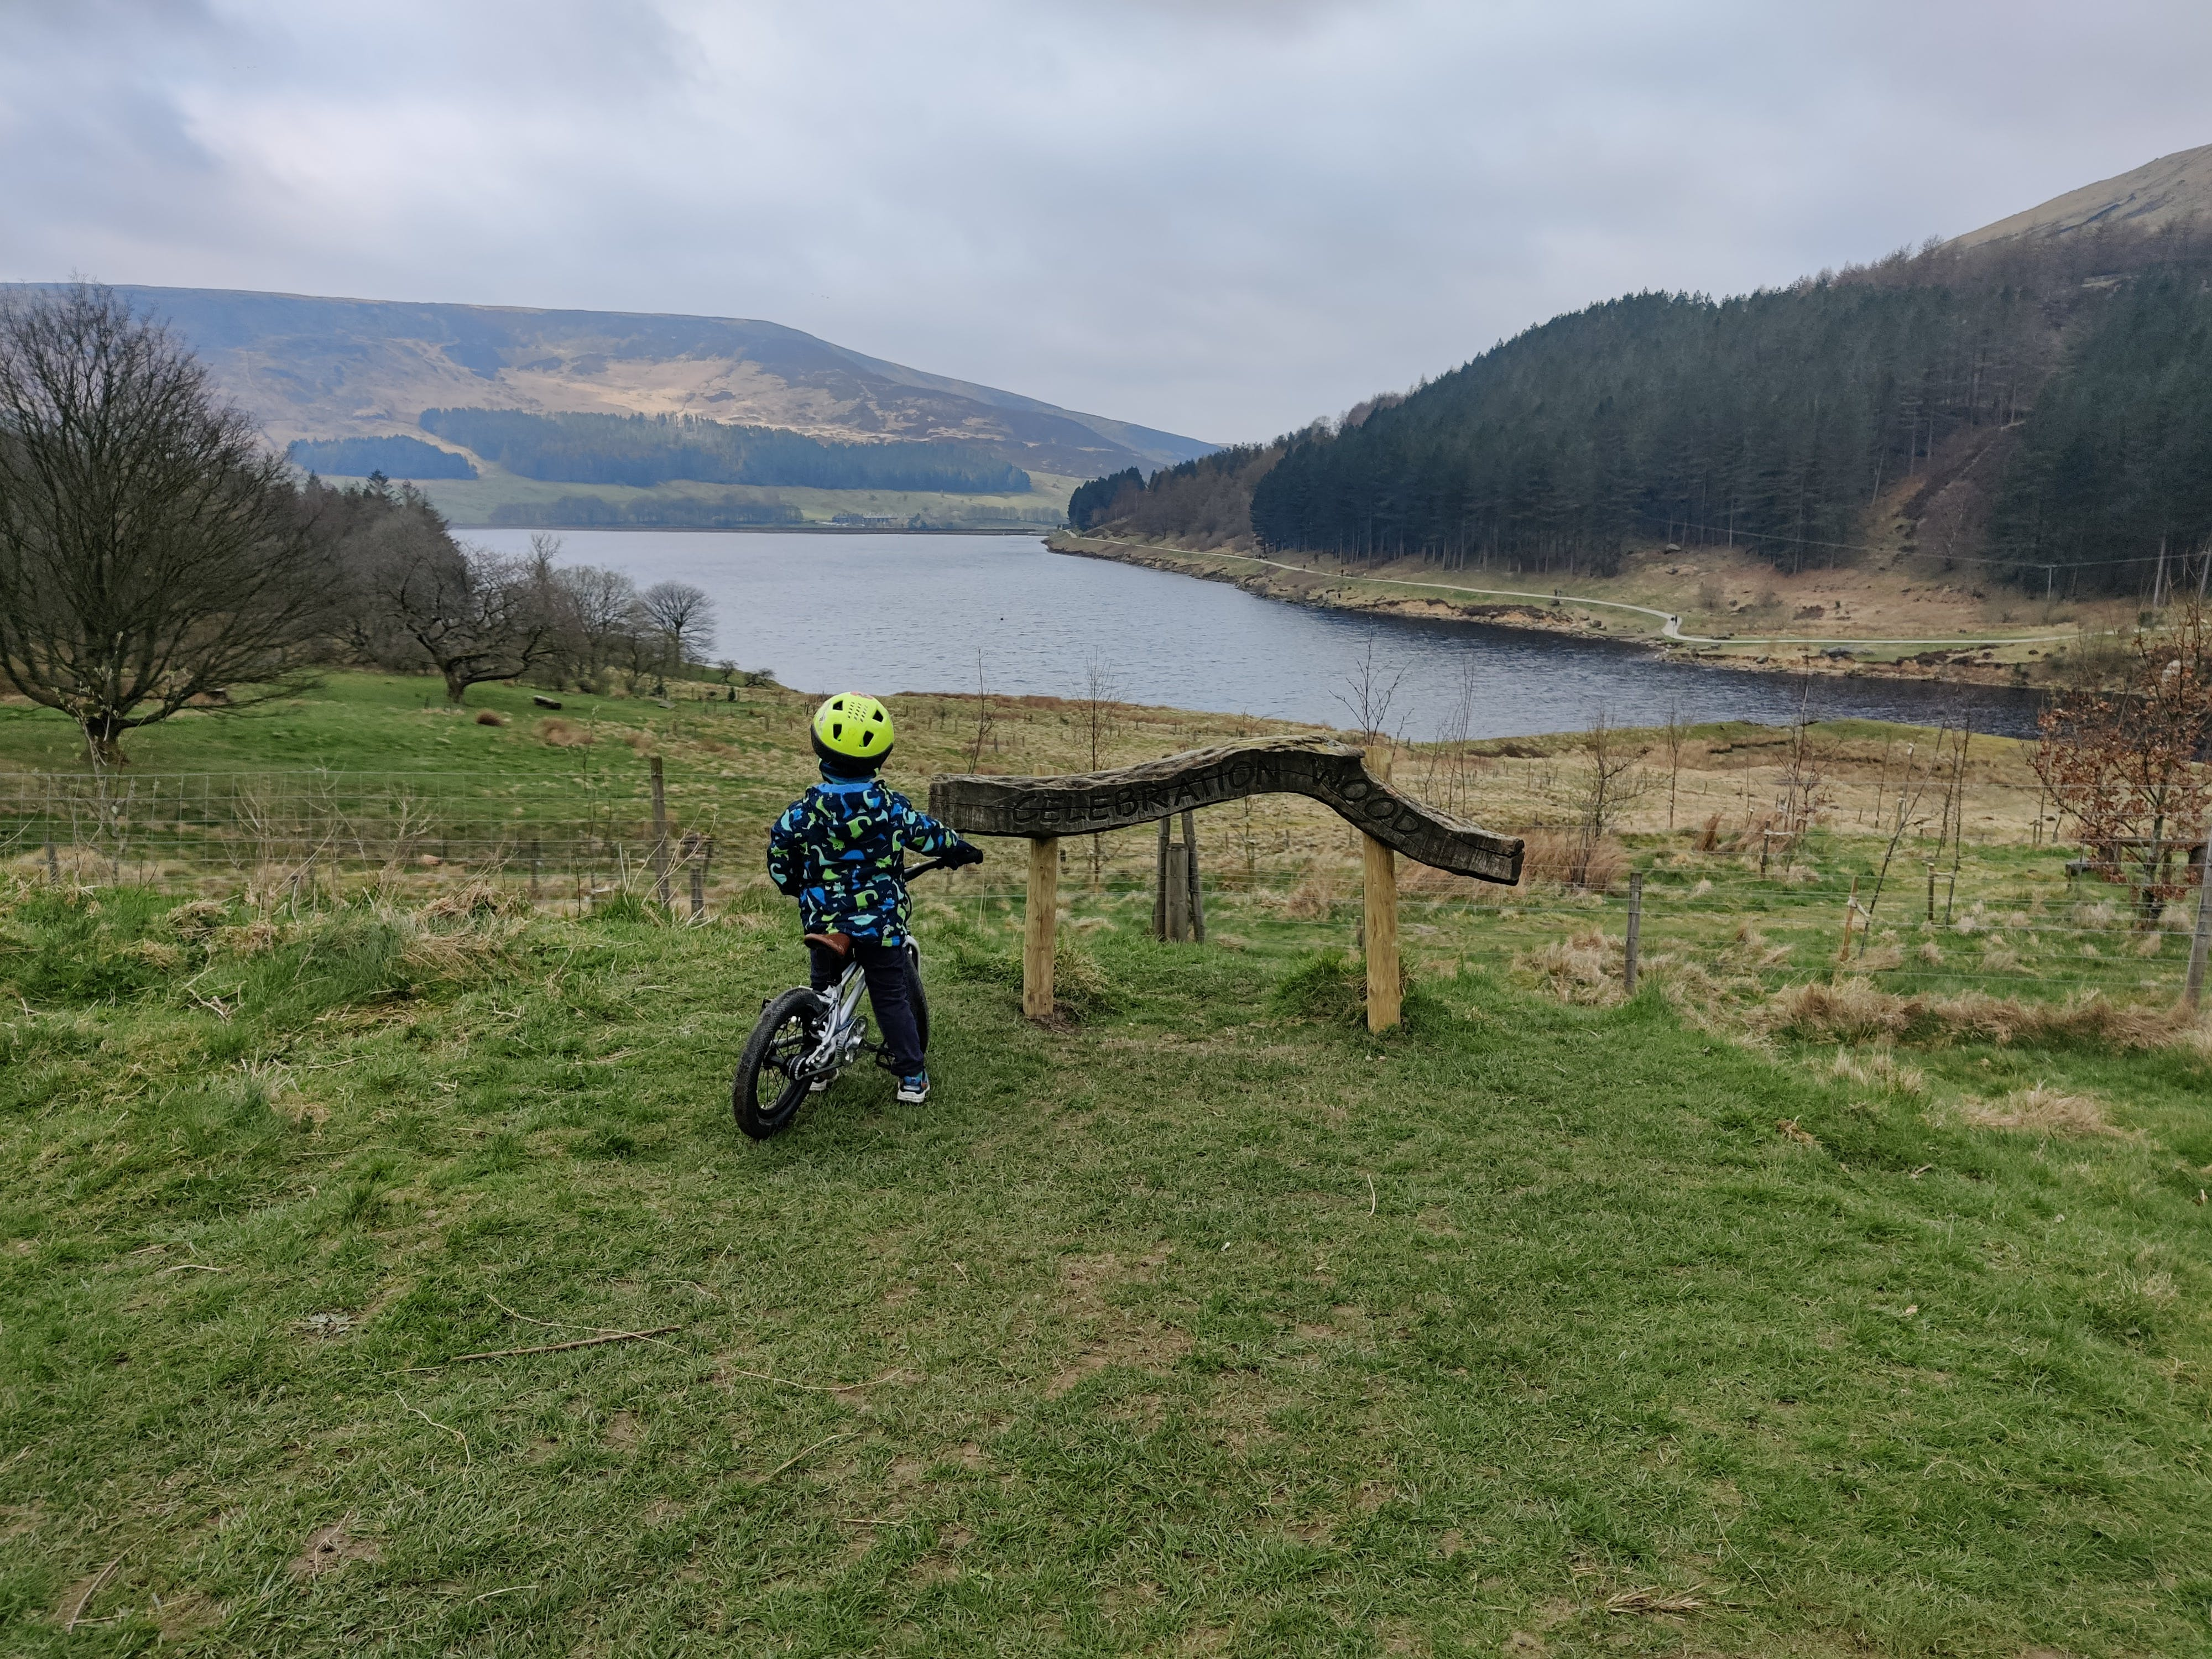 Straight into the Peak District 3 days after learning to ride